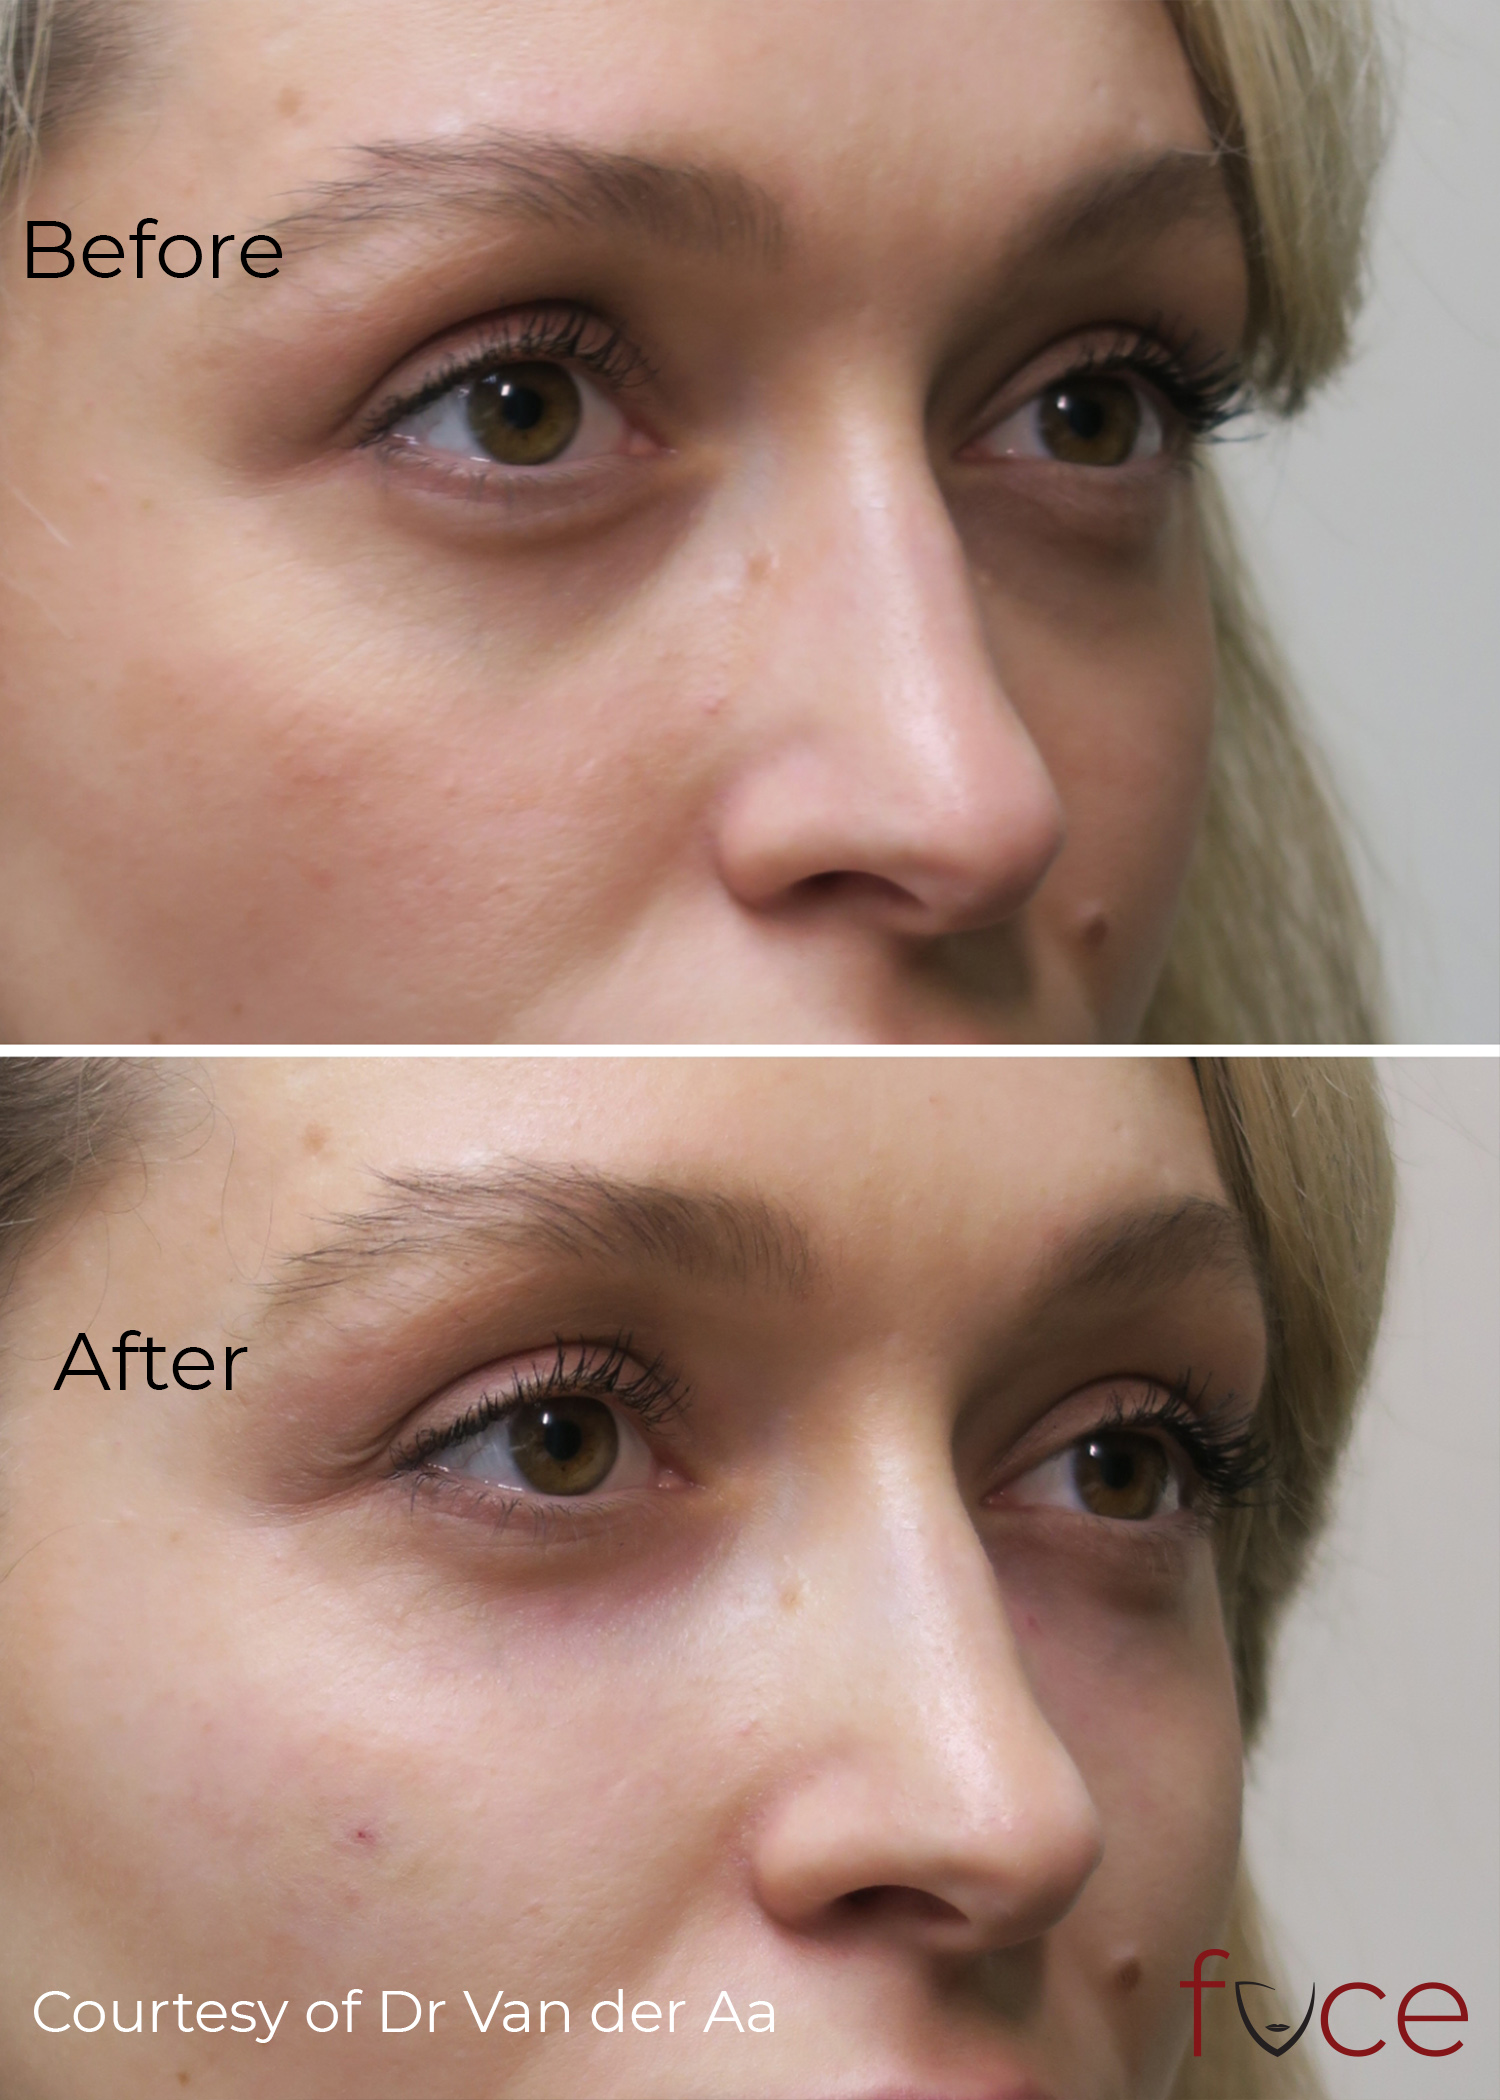 Tear Troughs: Before and After comparison.